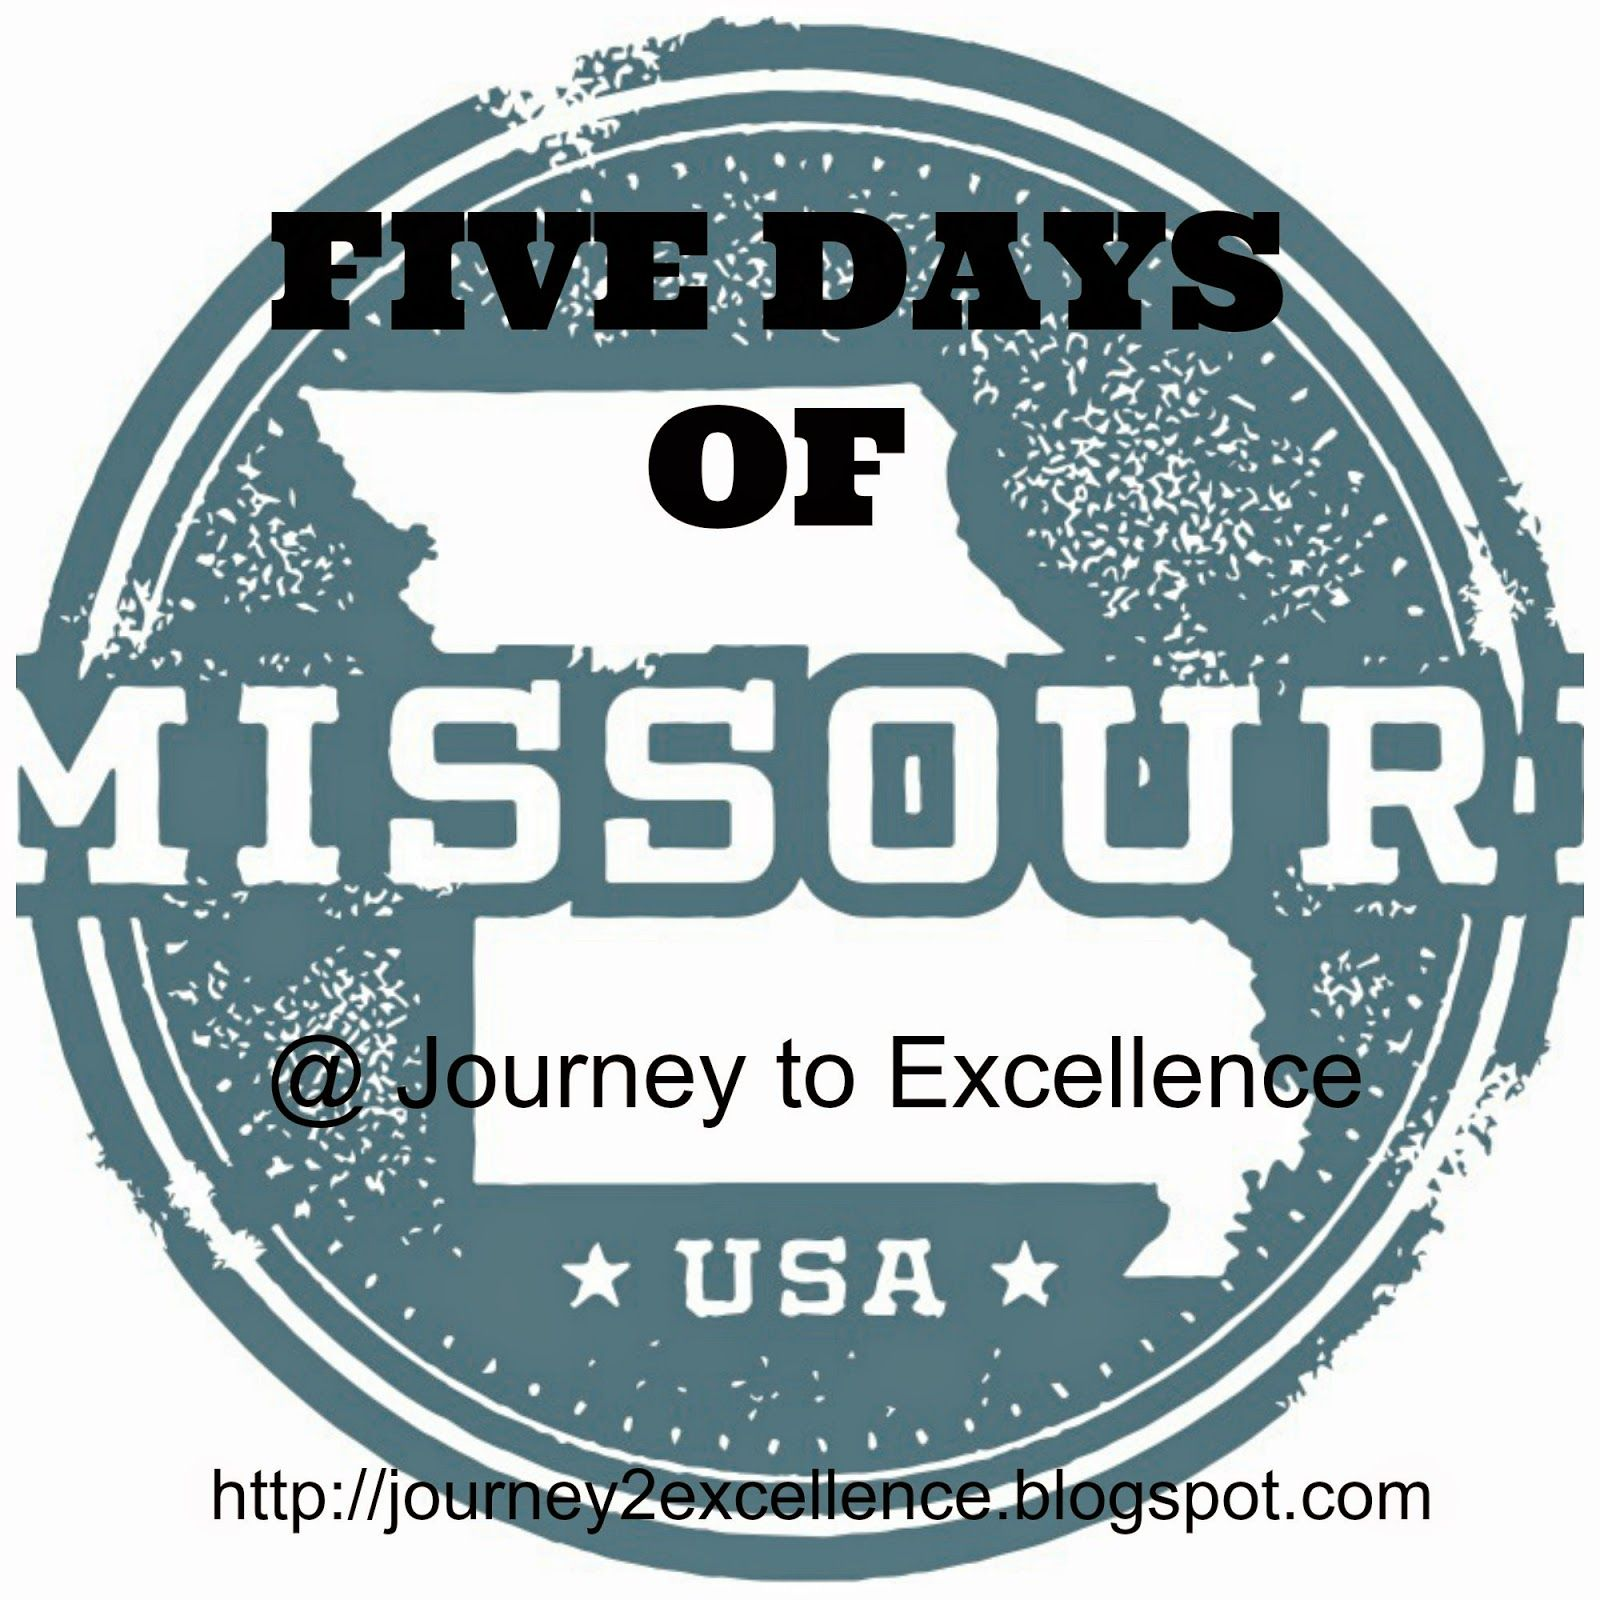 Journey to Excellence: Five Days of …. Missouri - Historic Landmarks {Schoolhouse Review Crew Blog Hop}